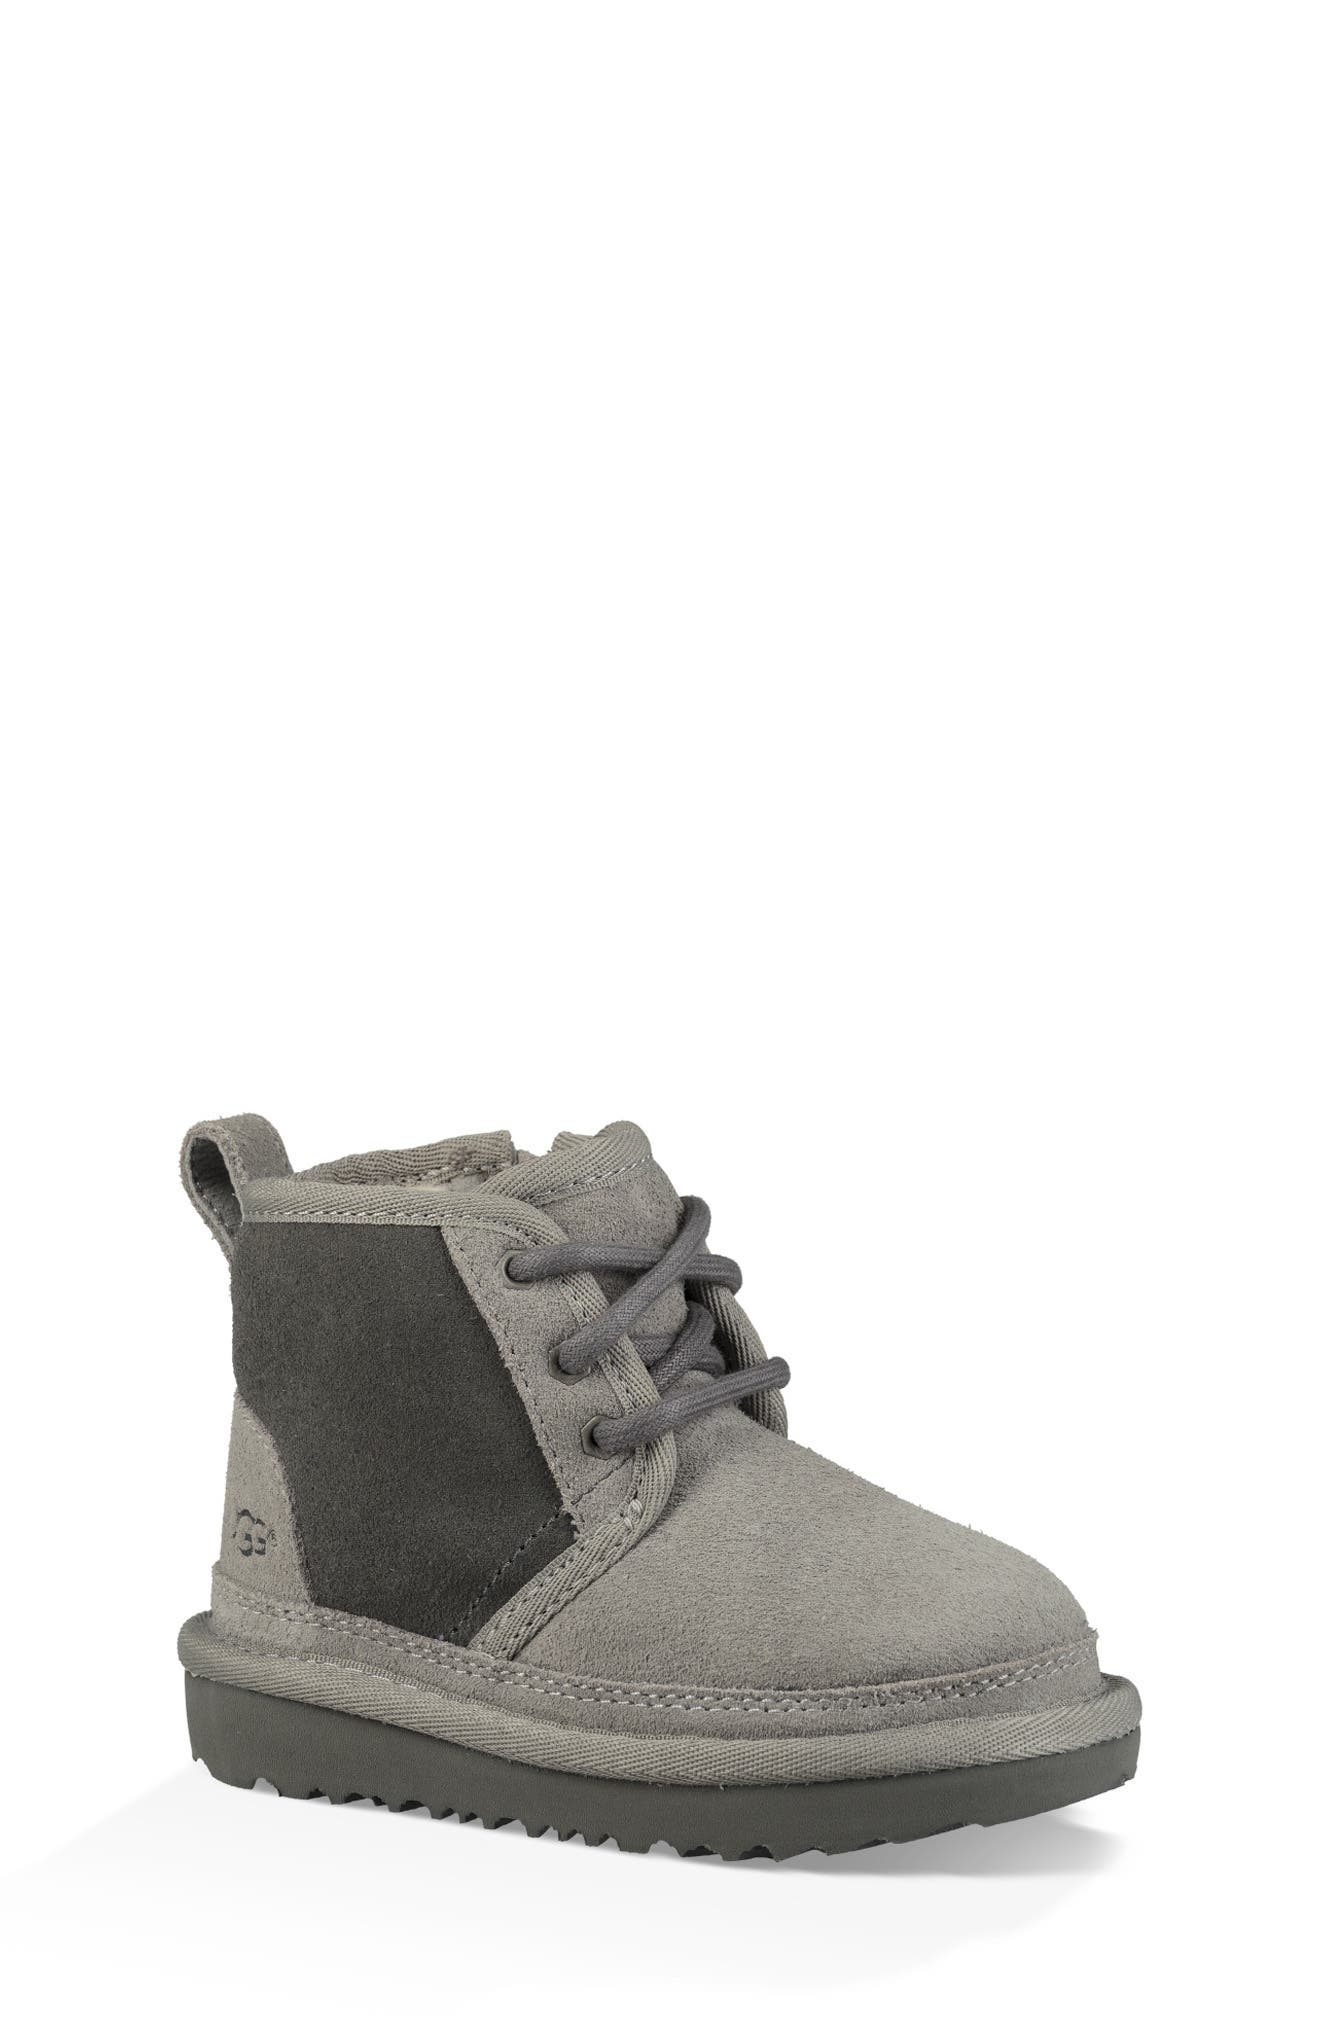 Neumel II Water Resistant Chukka Boot,                         Main,                         color, CHARCOAL